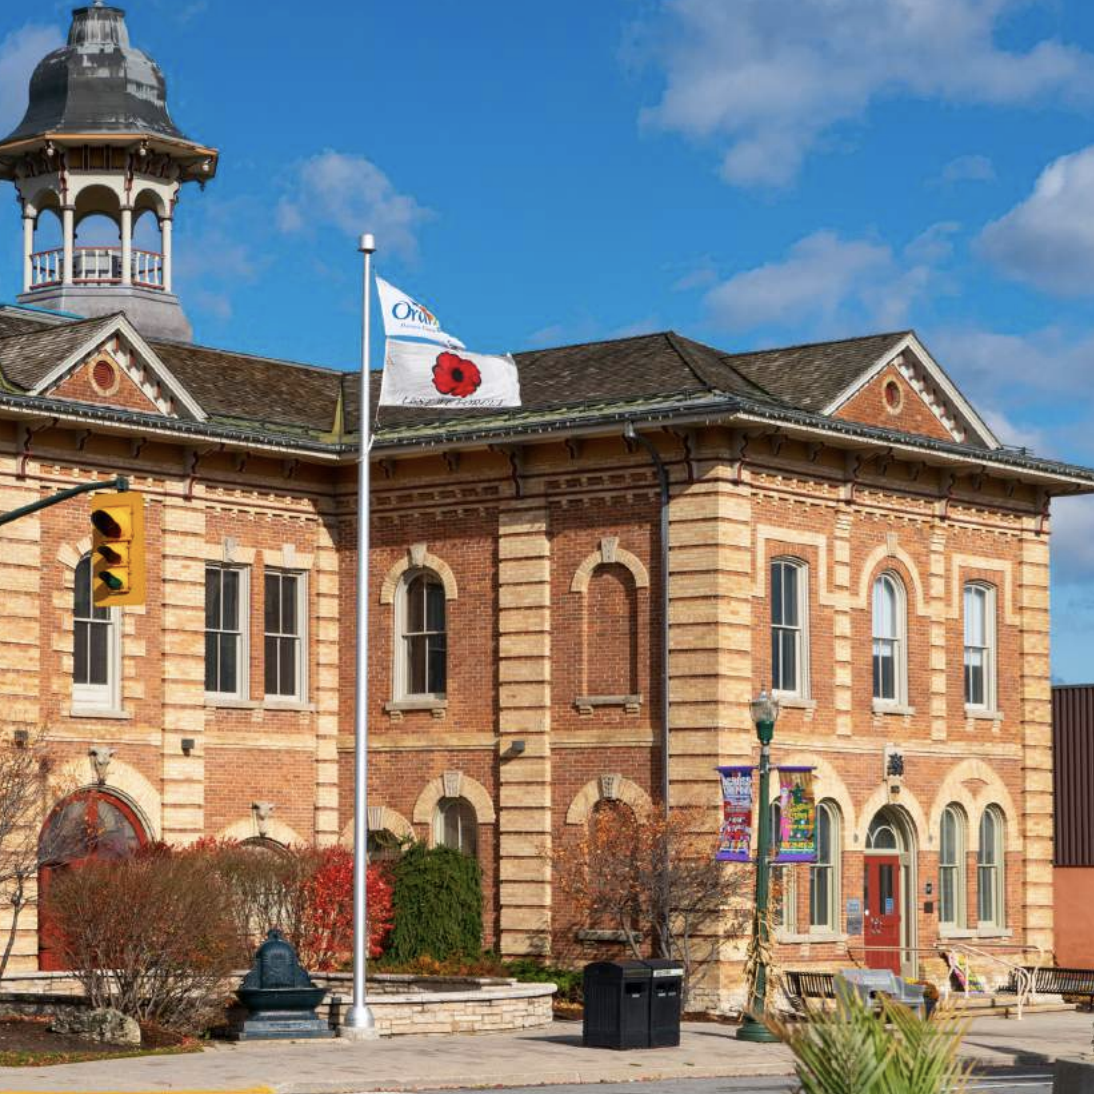 Destination Assessment of Orangeville, Ontario